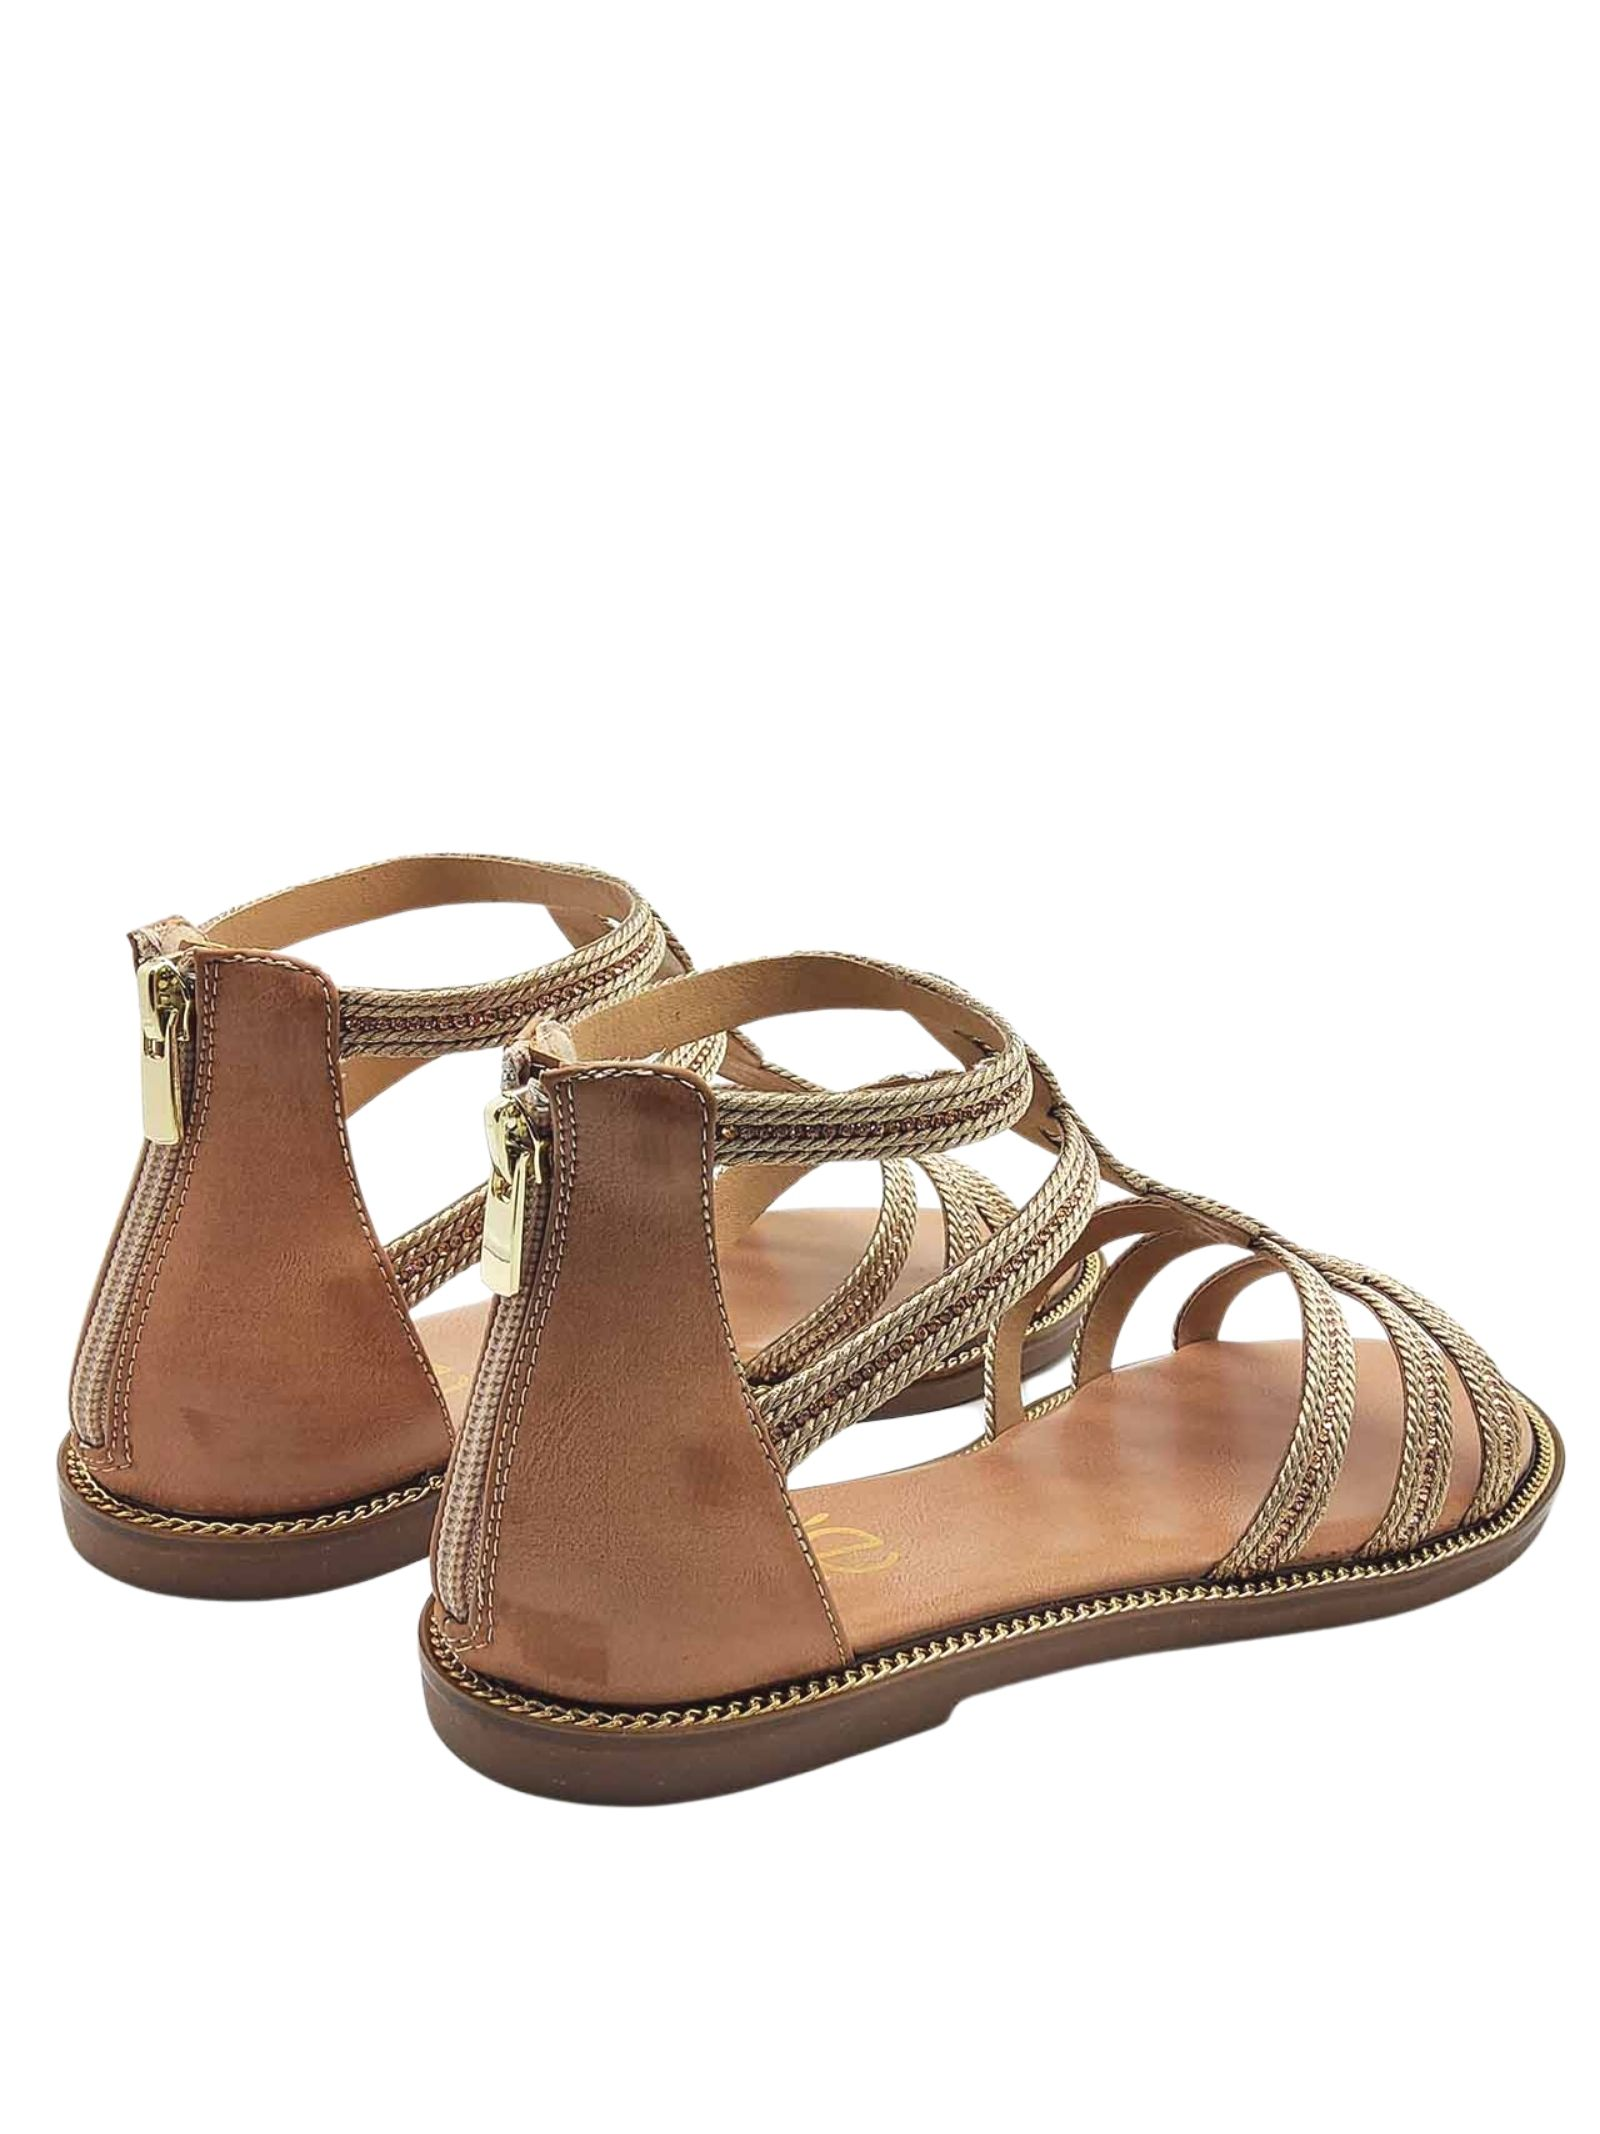 Women's Shoes Low Sandals in Nude Leather With Gold Embroidery Heel Closed with Back Zip Exe | Flat sandals | ARIANA150602